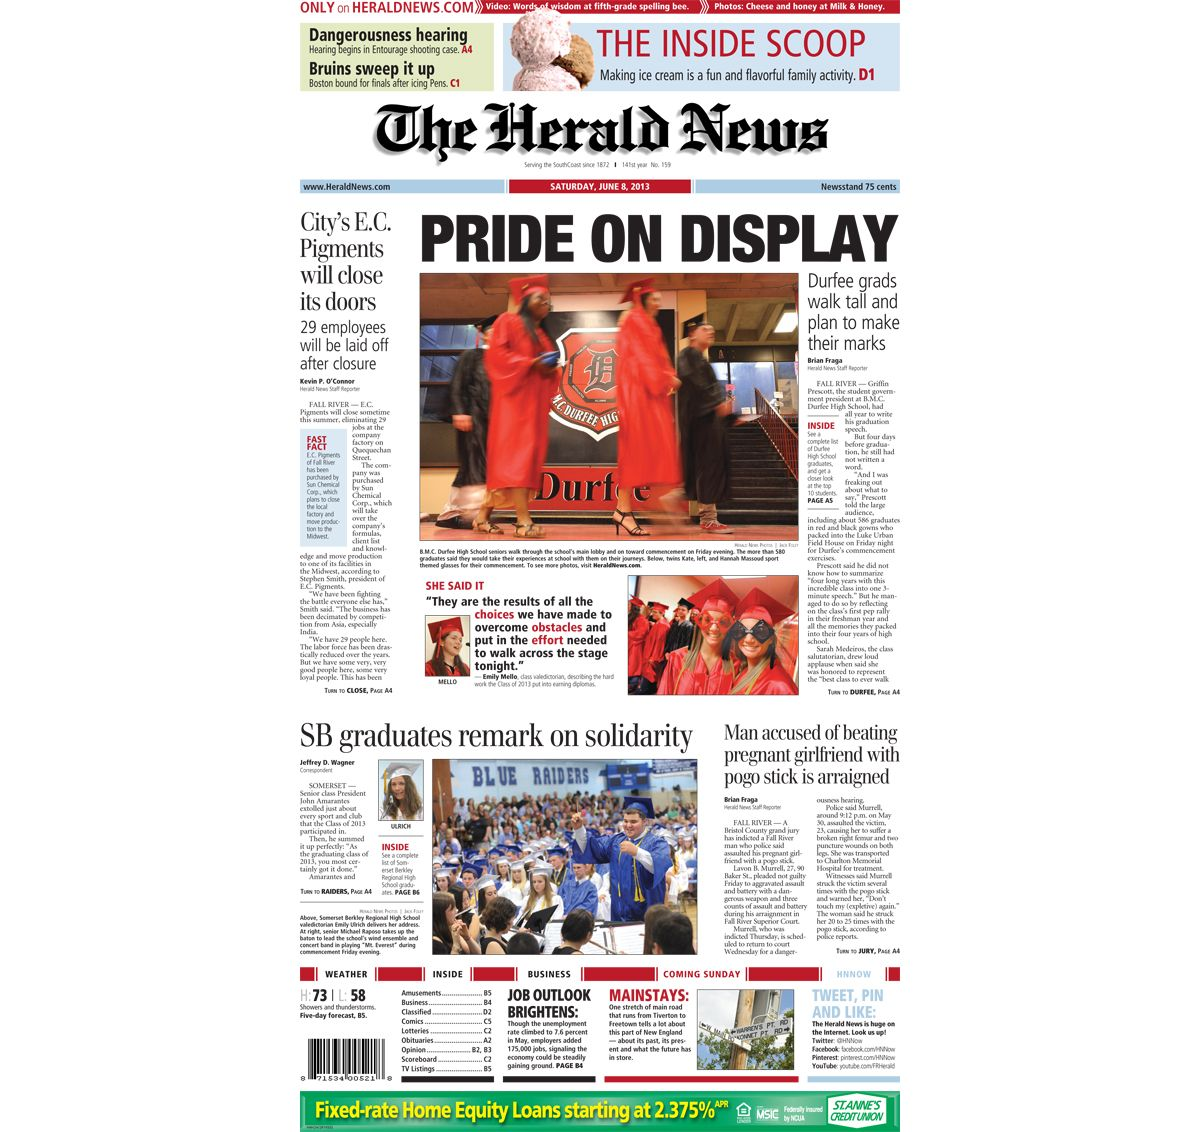 The front page of The Herald News for Saturday, June 5, 5